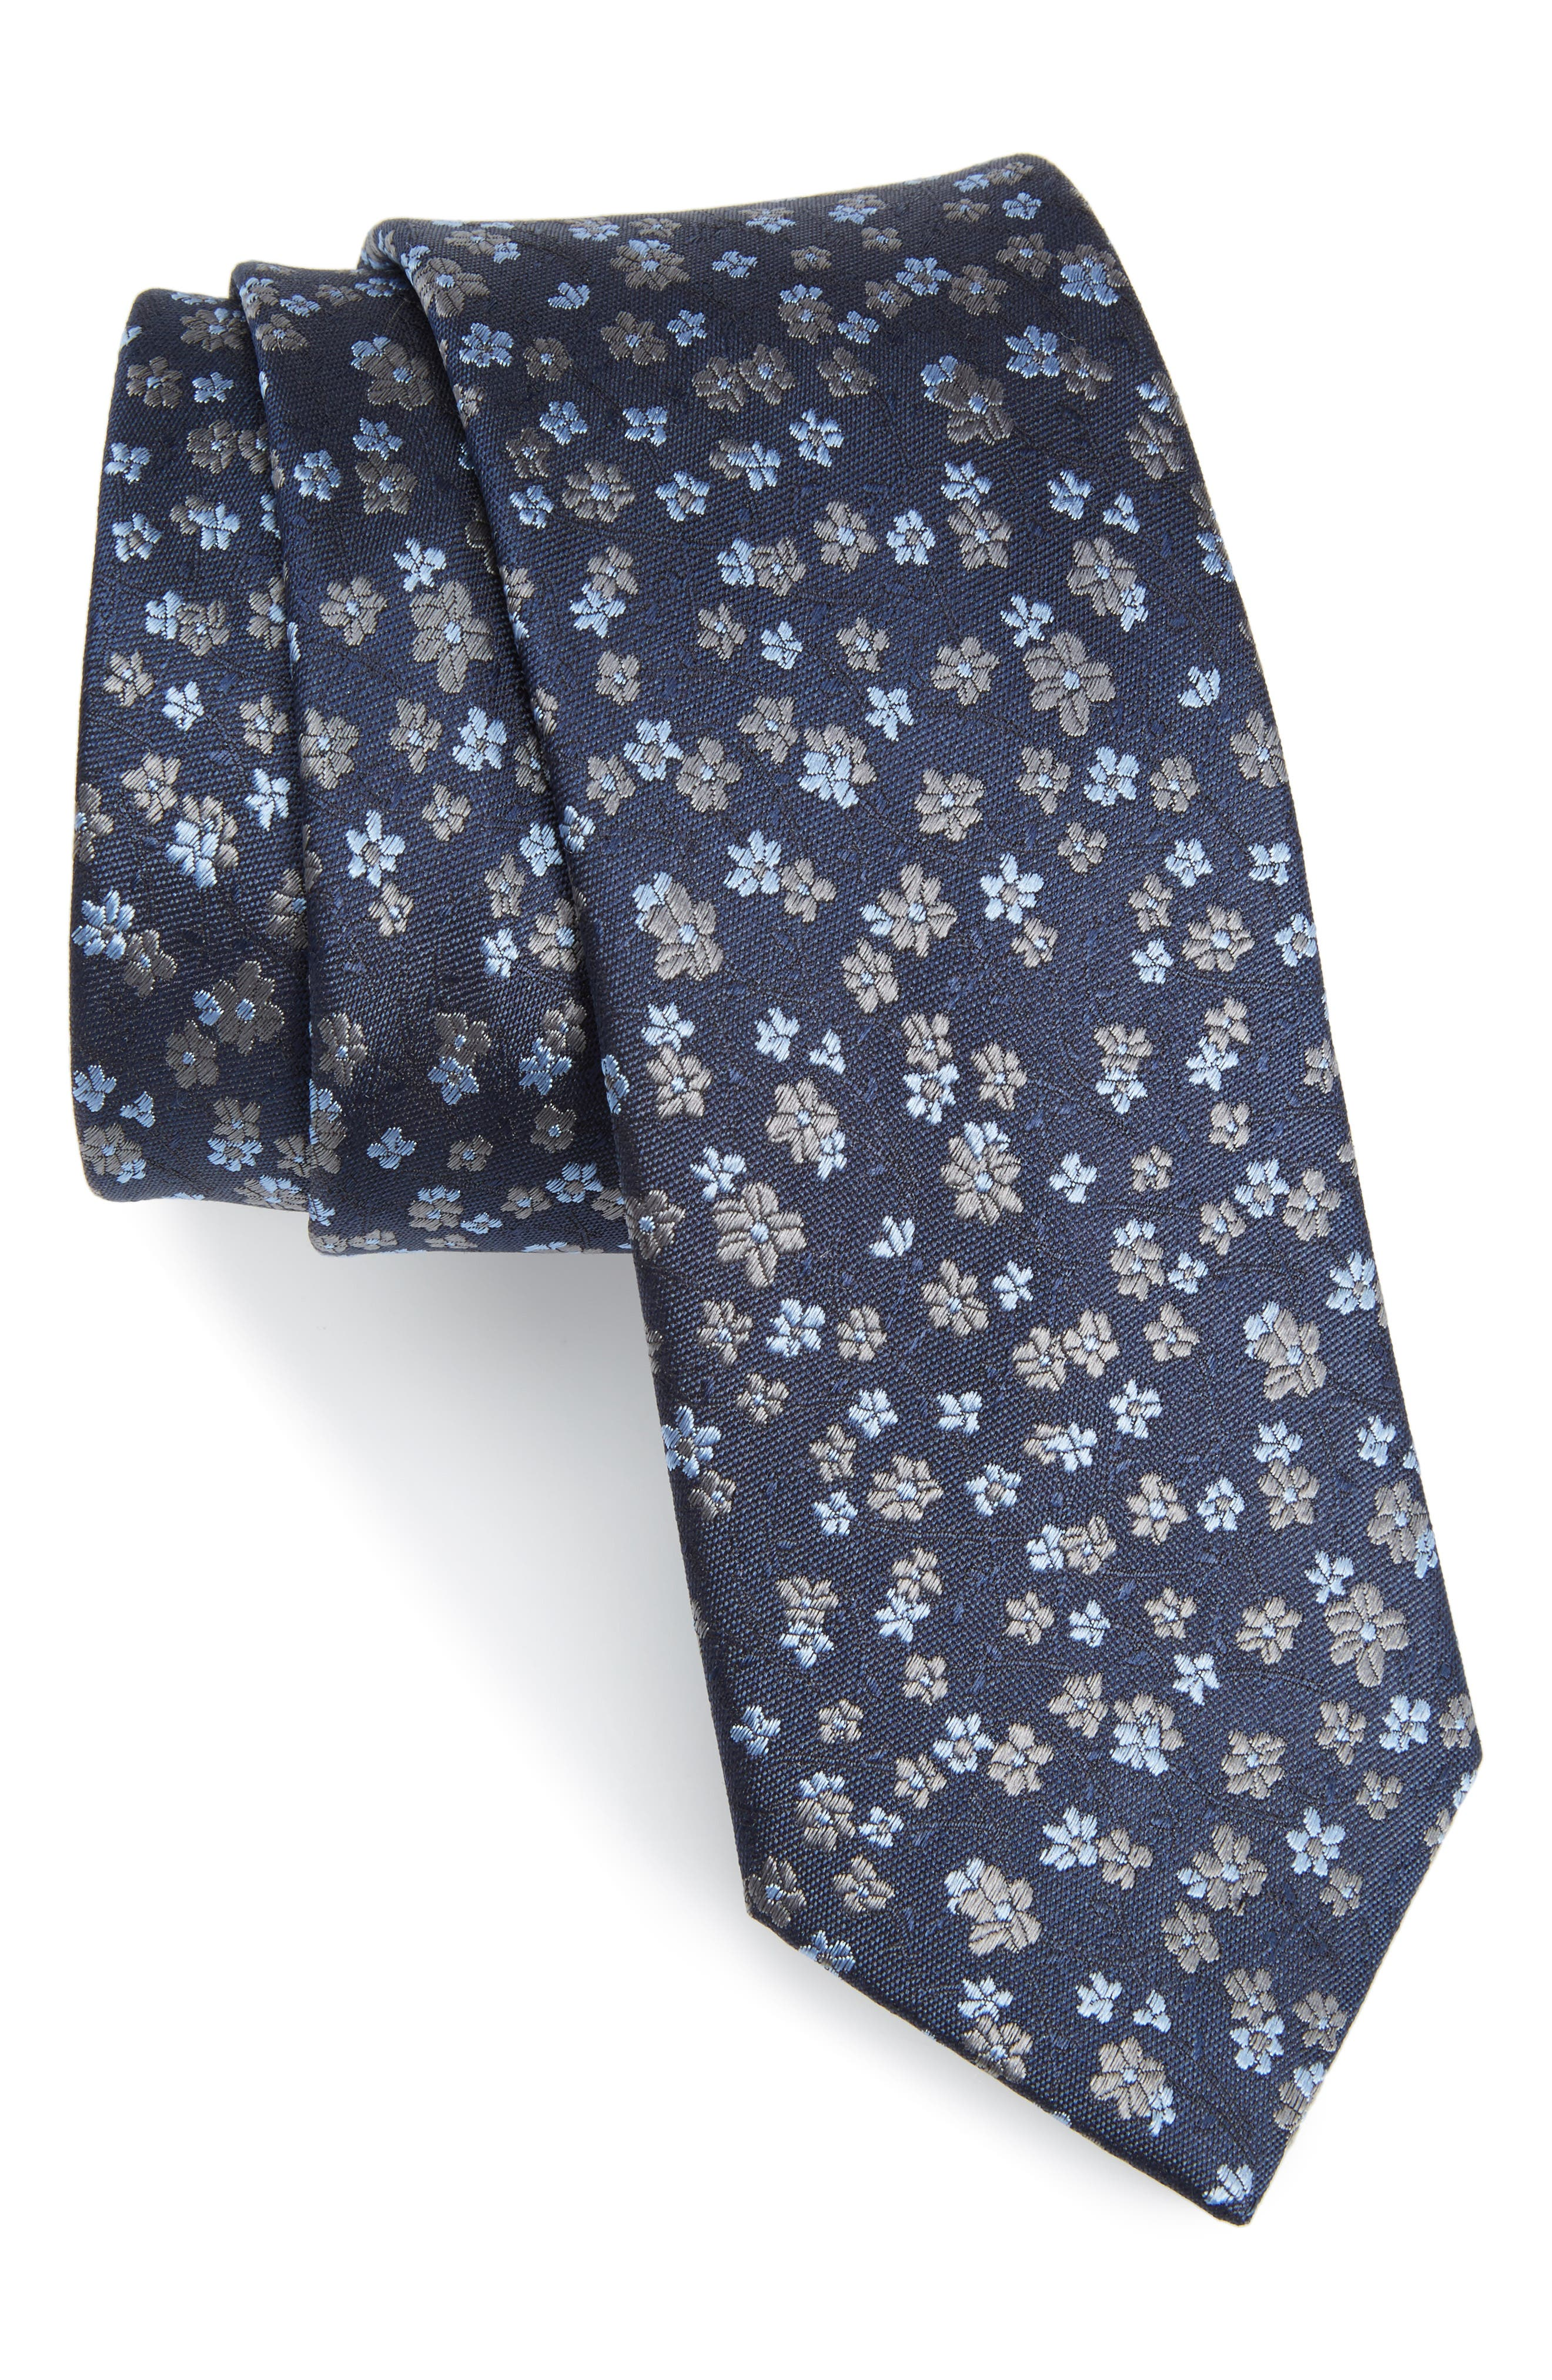 Alternate Image 1 Selected - The Tie Bar Freefall Floral Silk Tie